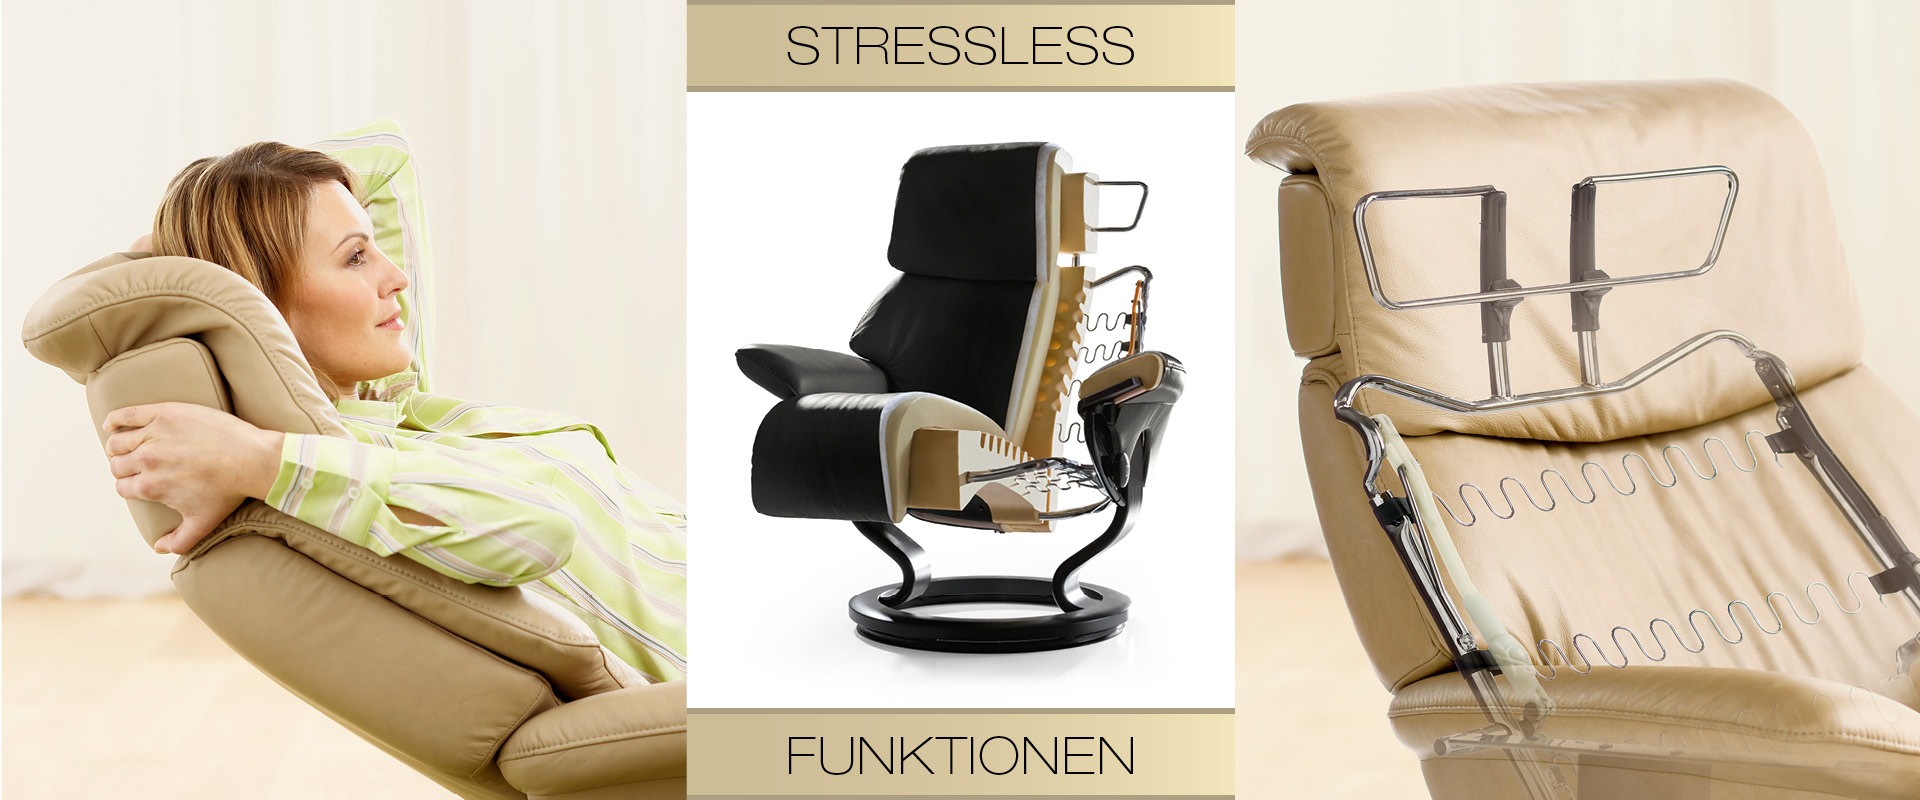 Stresless Stressless Komfort Systeme Sesselei In Hamburg